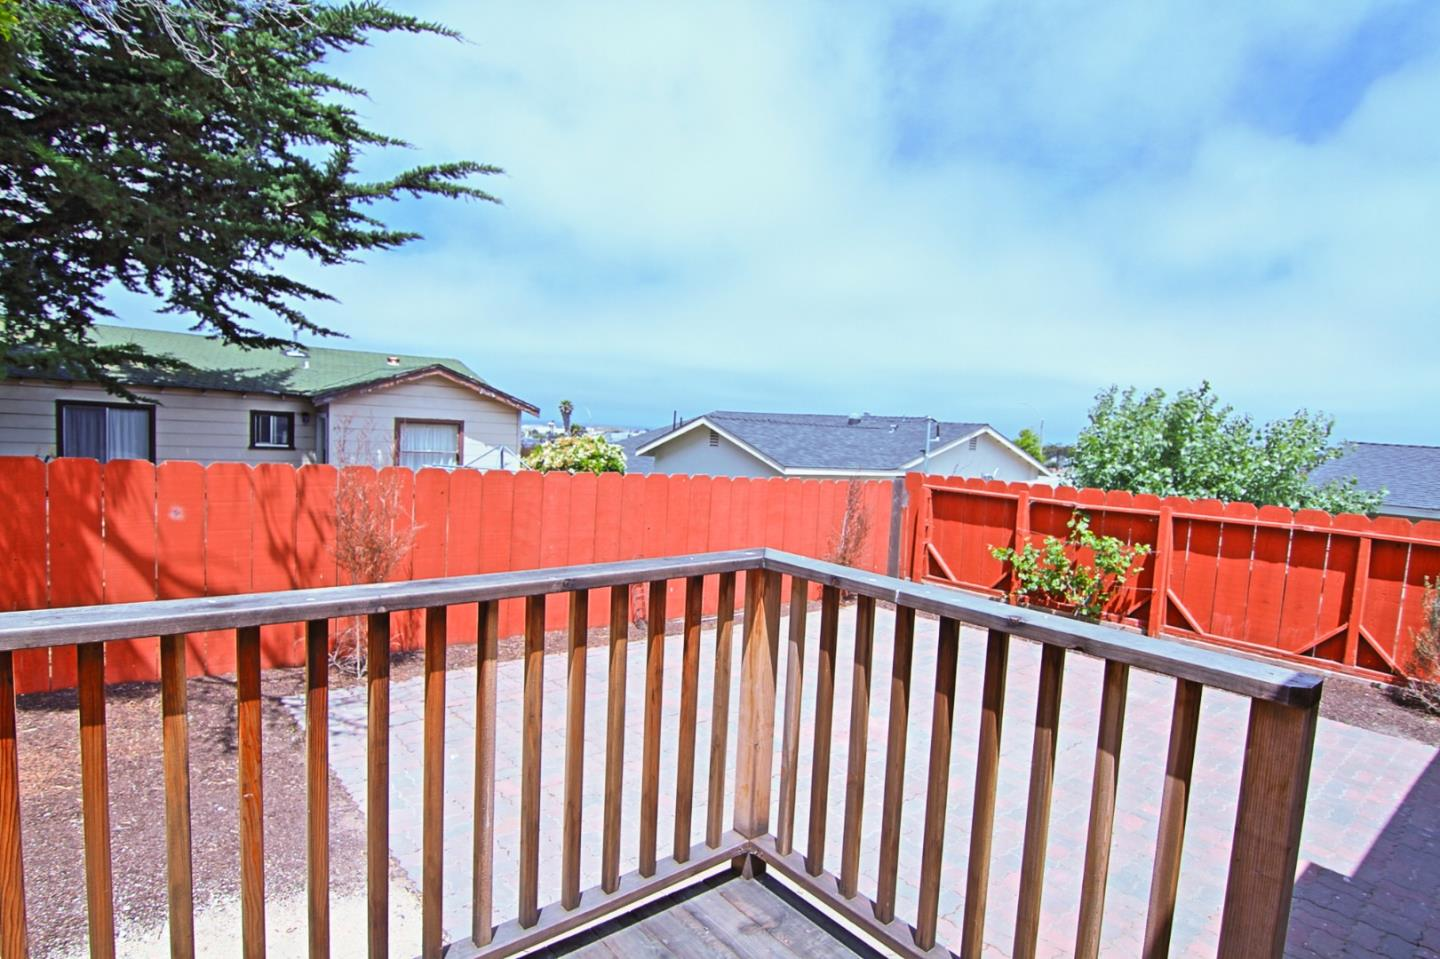 Additional photo for property listing at 1641 Judson Street  Seaside, California 93955 Estados Unidos